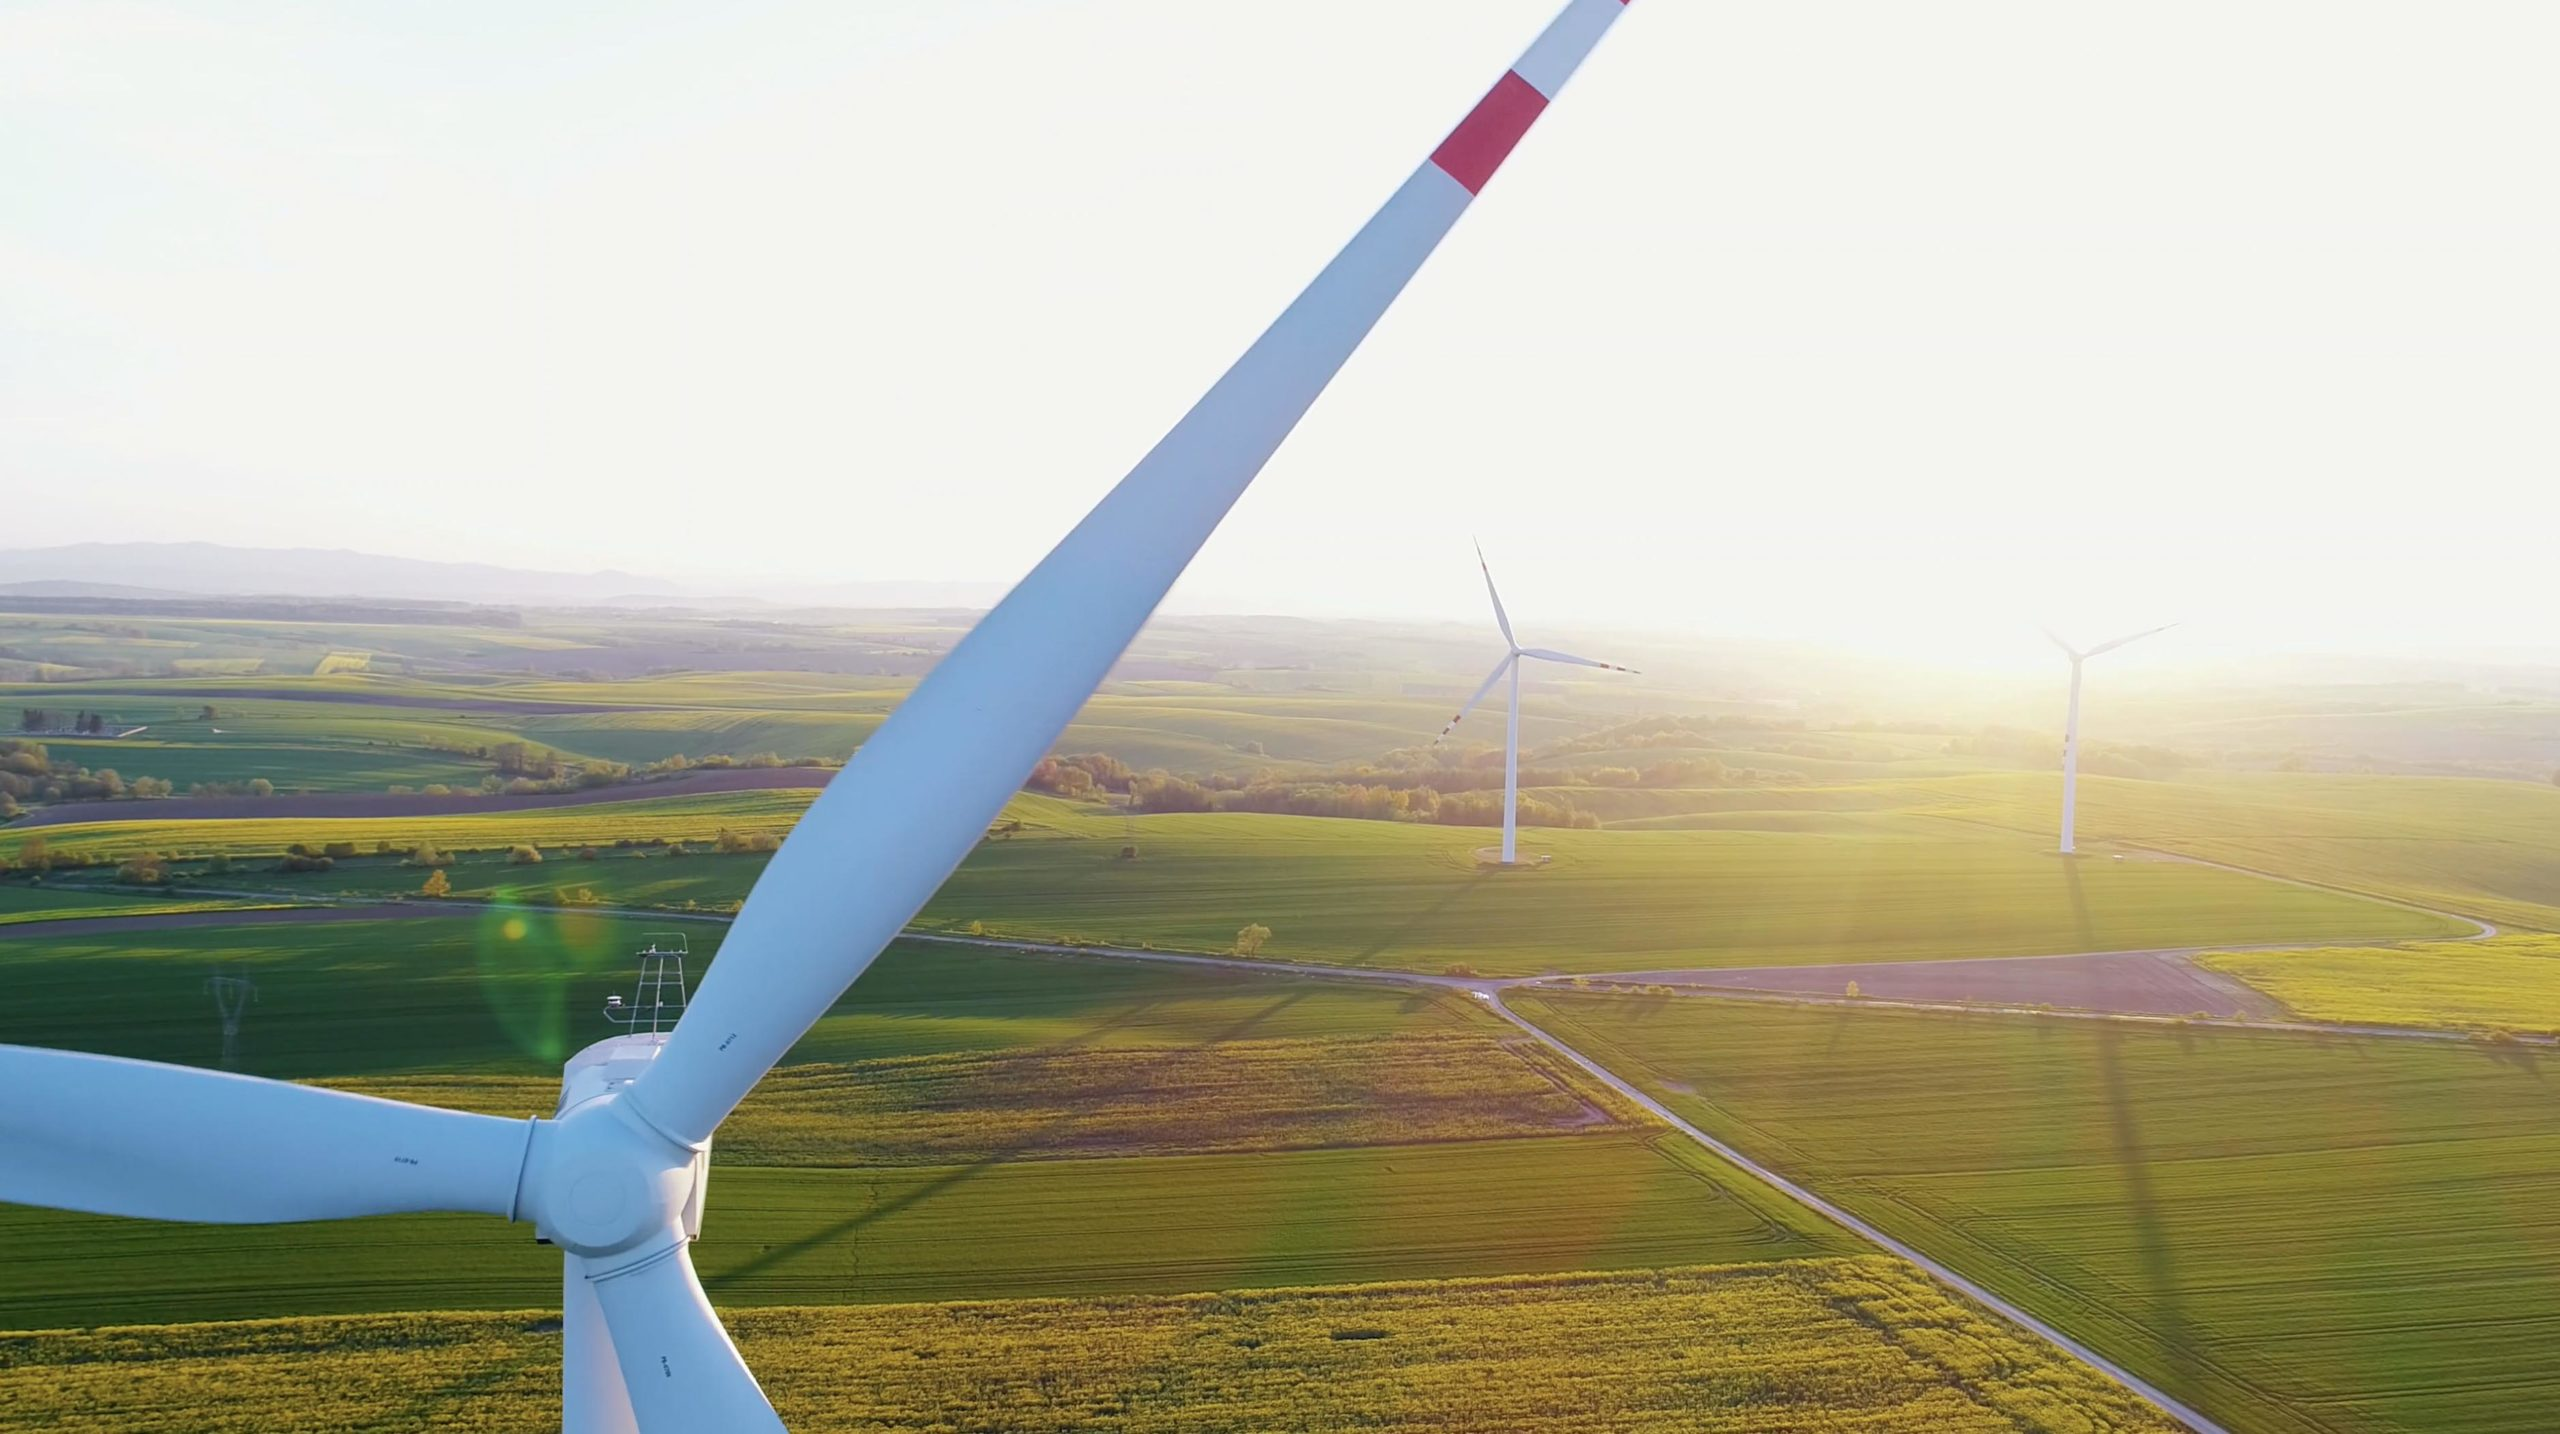 EDF RENEWABLES TOGETHER WITH JOHNSON MATI and BAZAN GROUP – Unites together to form Labs for finding environmental solutions to the global climate crisis